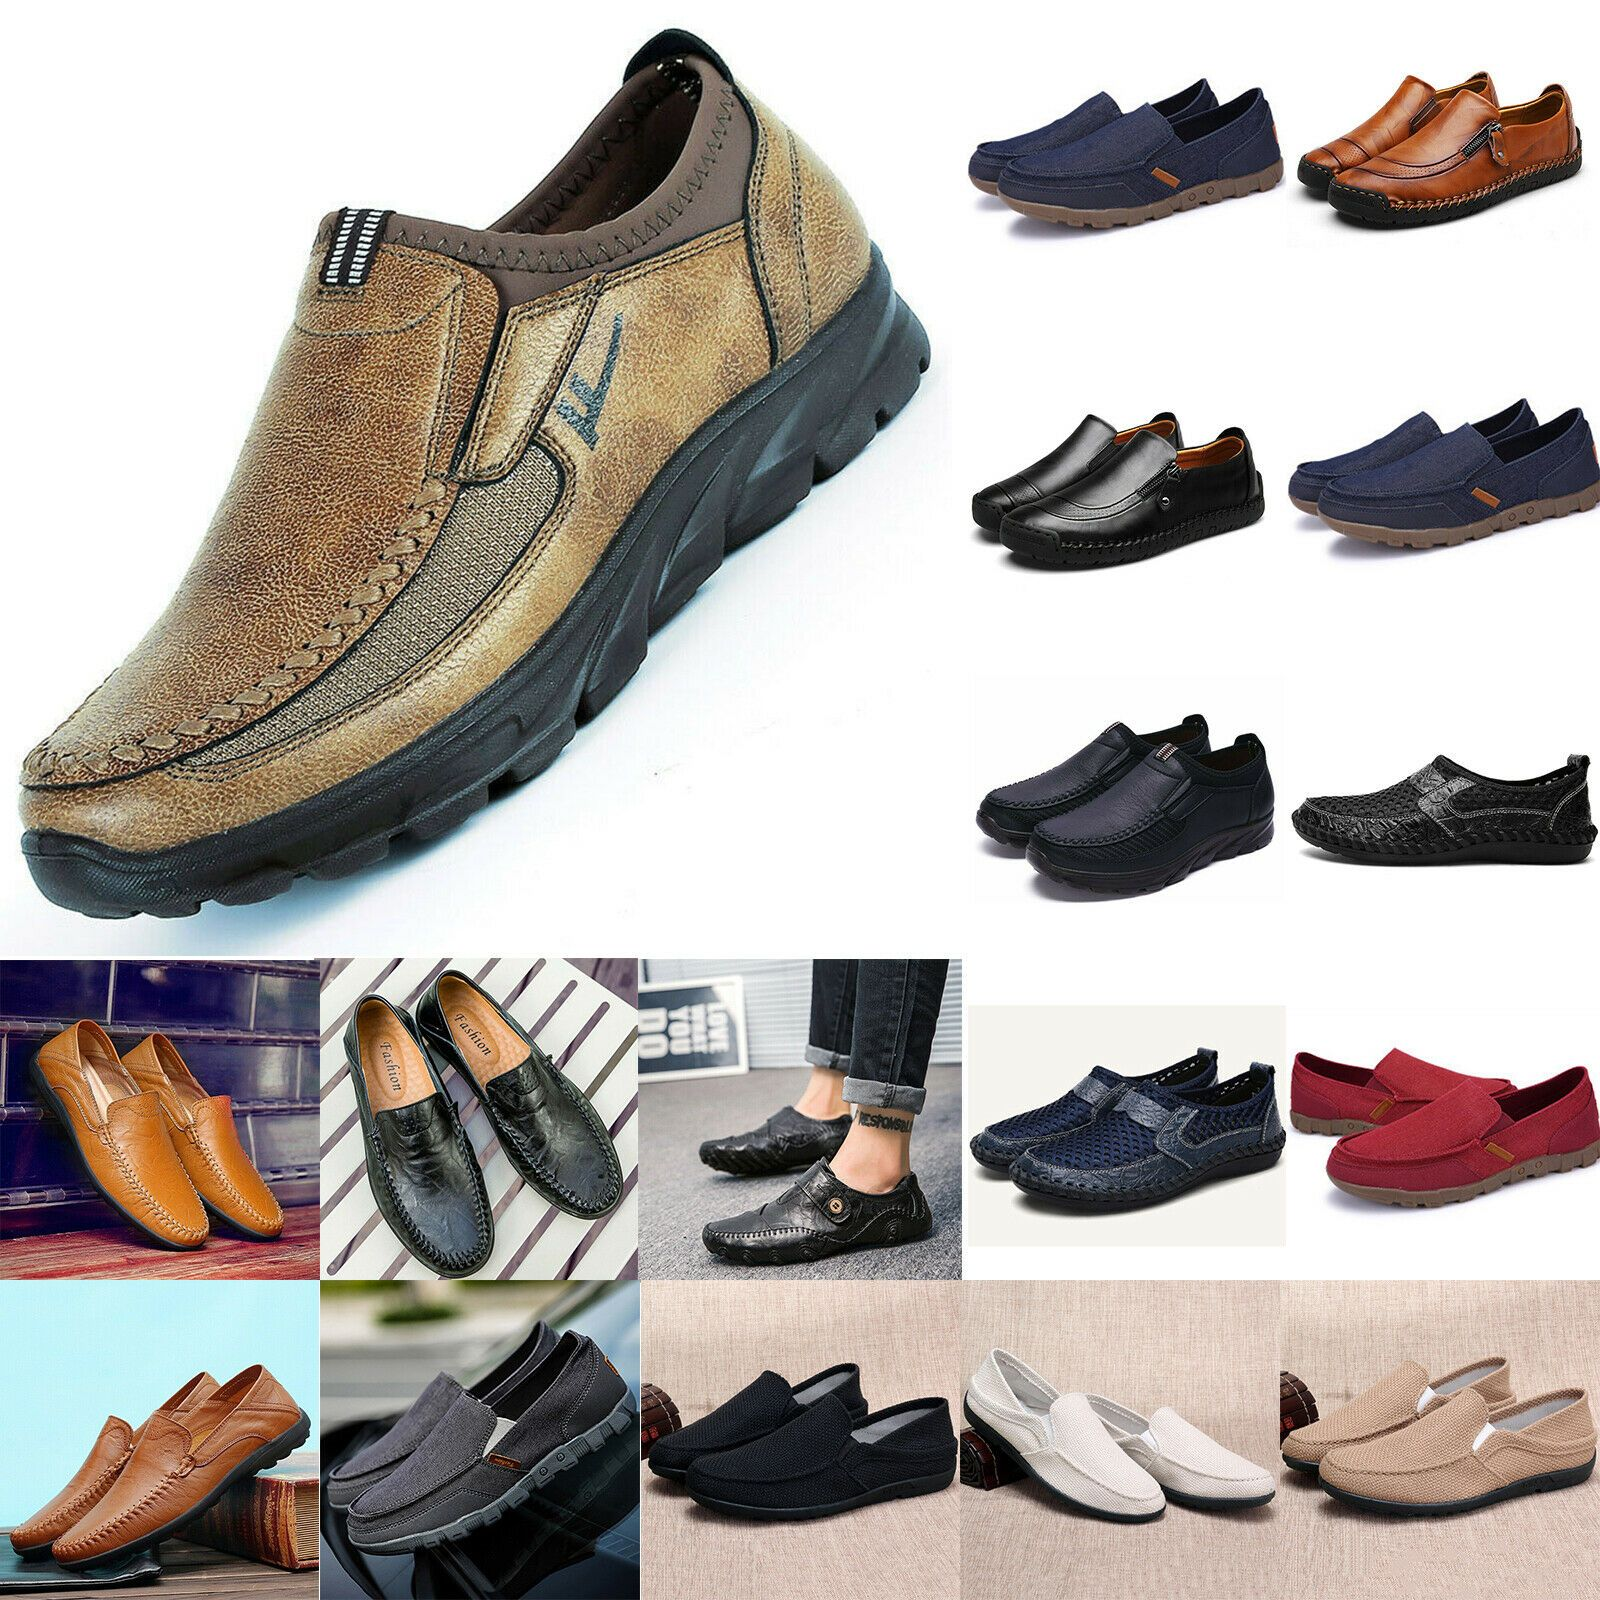 Men/'s Slip On Leather Casual Driving Shoes Loafers Moccasins Trainers Fashion